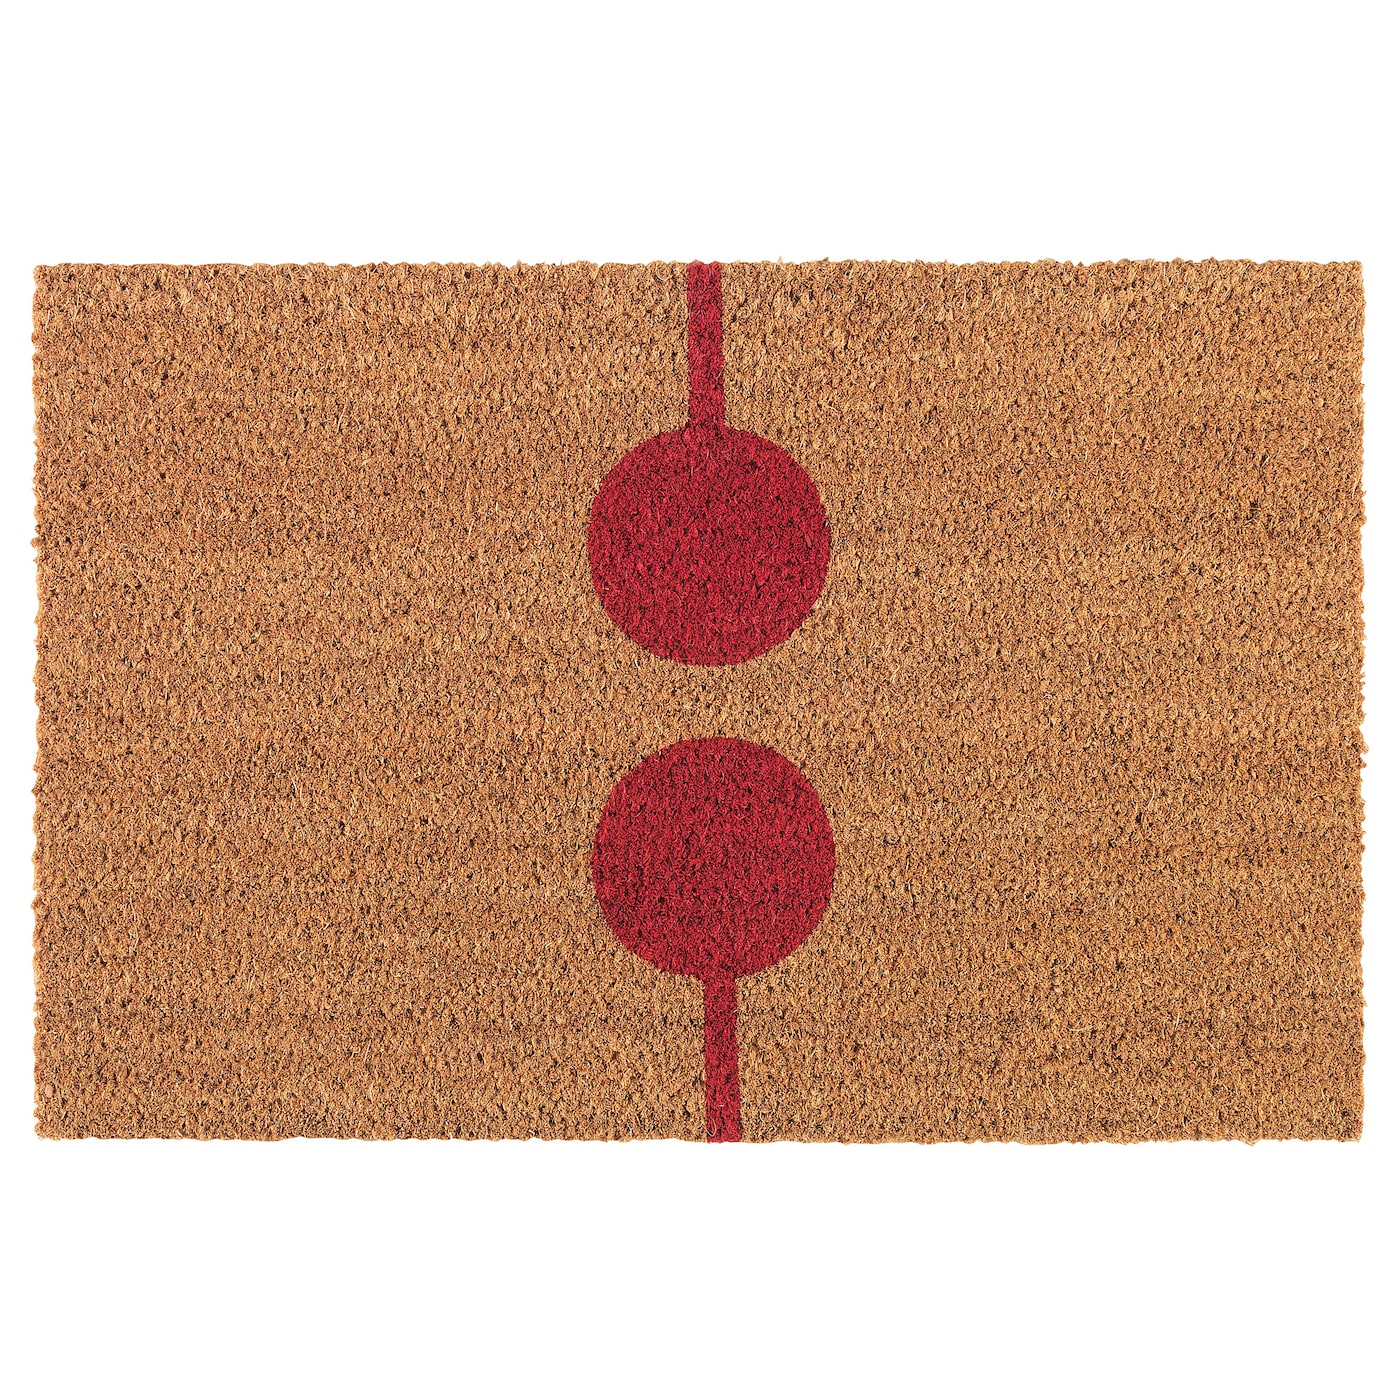 Ikea Vejers Door Mat Easy To Keep Clean Just Vacuum Or Shake The Rug